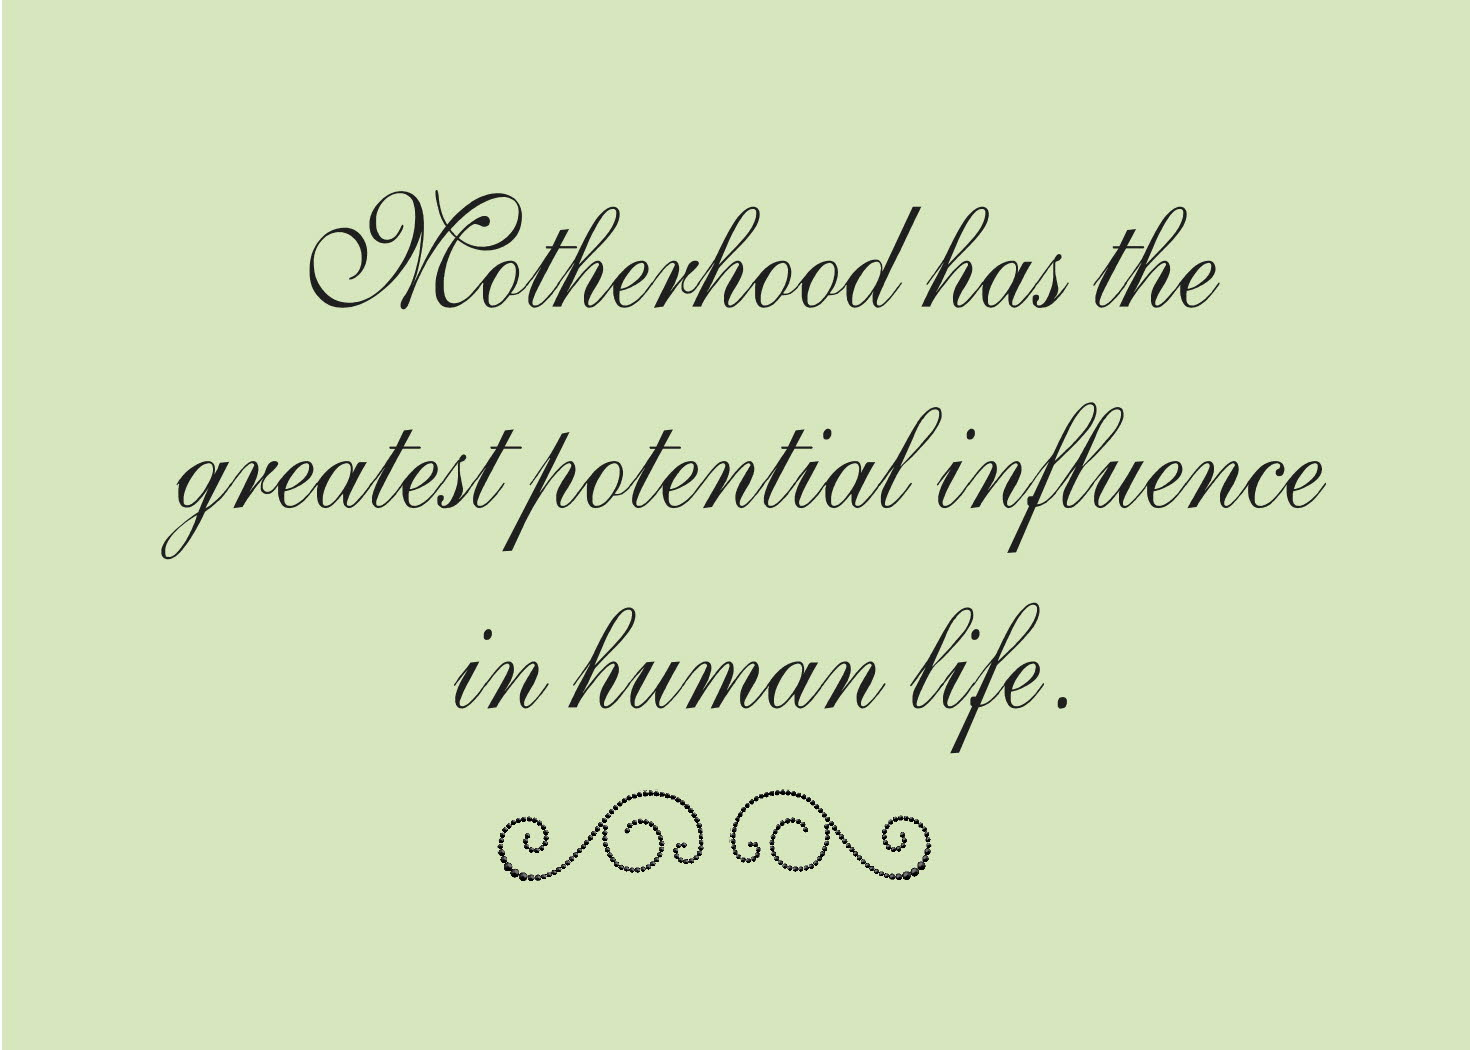 motherhood-has-the-greates-potential-influence-in-human-life-mother-quote